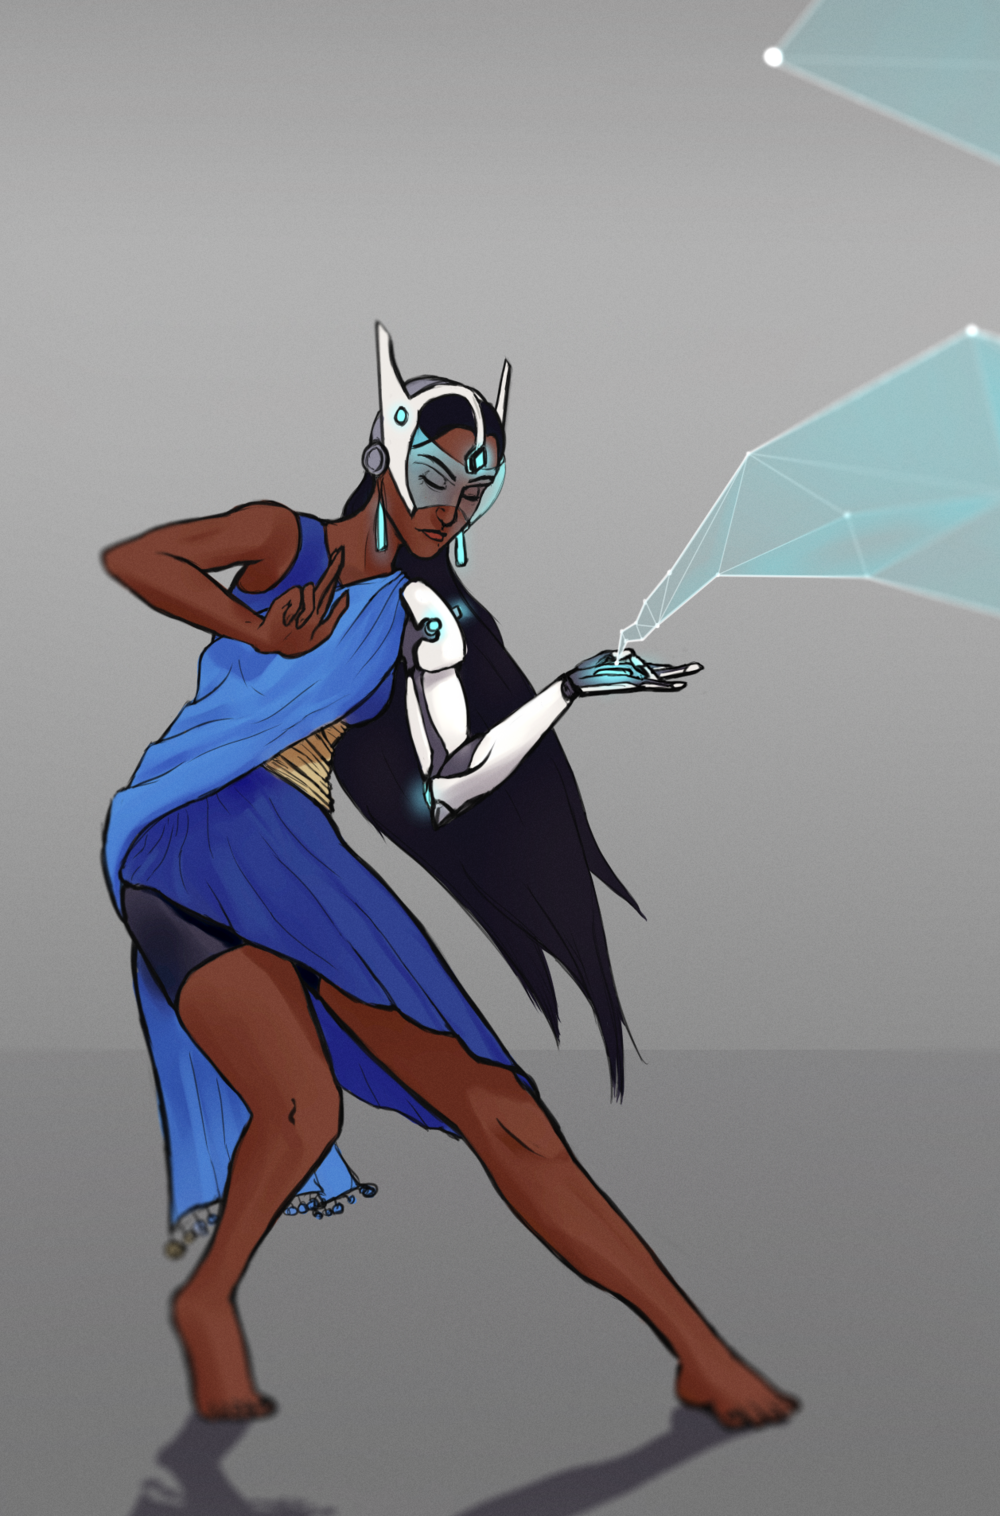 Symmetra from Blizzard's character-based FPS Overwatch. Had a lot of fun doing the research for the alternate costume, Indian clothing is not really something I'm familiar with.